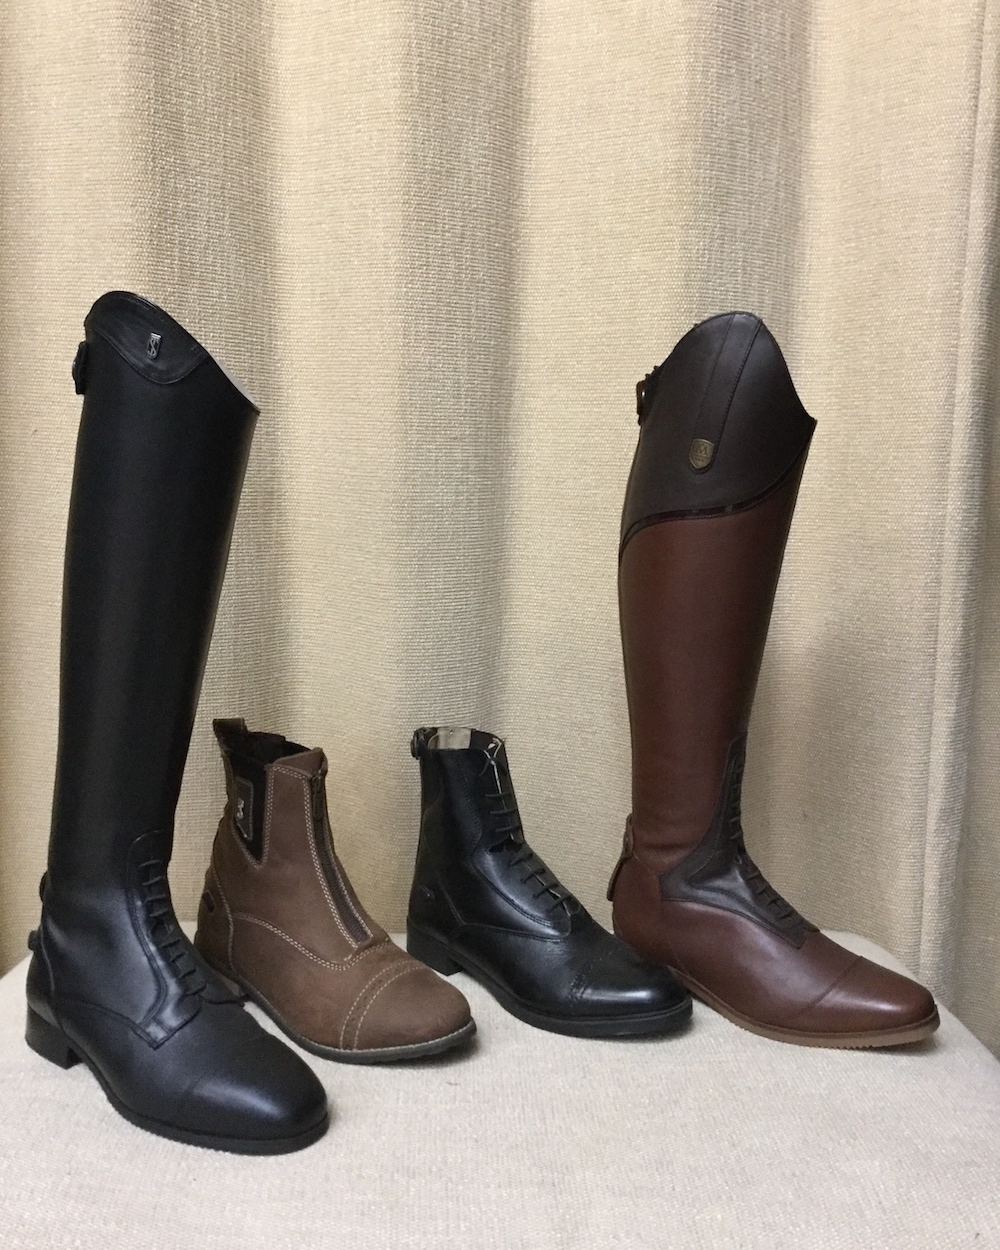 Equestrian Clothing Amp Accessories